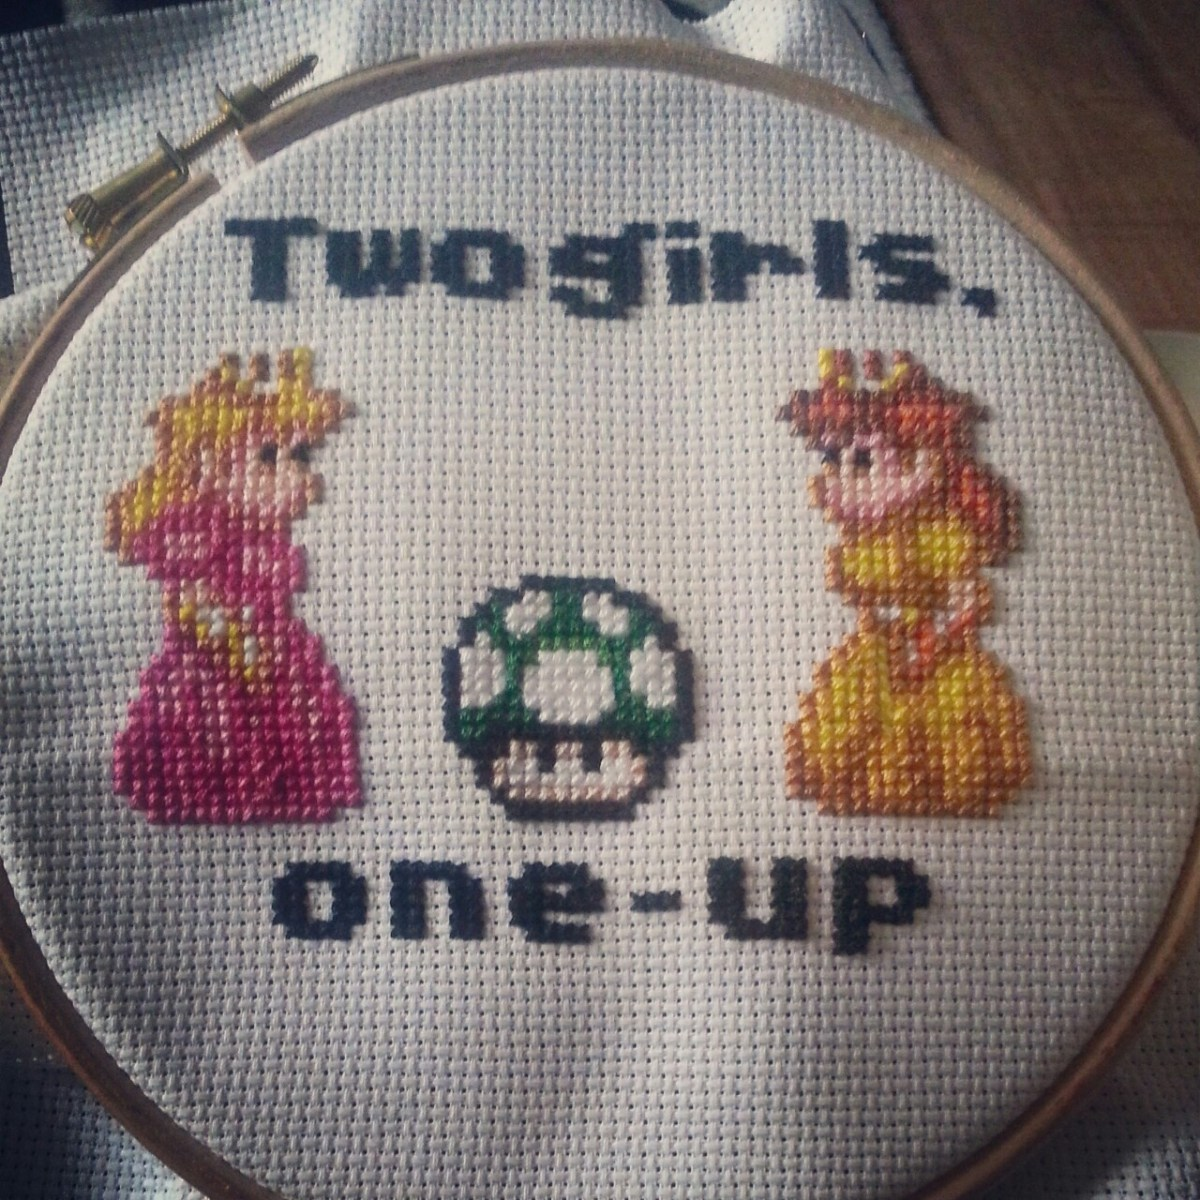 Stitchgasm! Kaylie-Jane's Two Girls, One Up Cross Stitch!